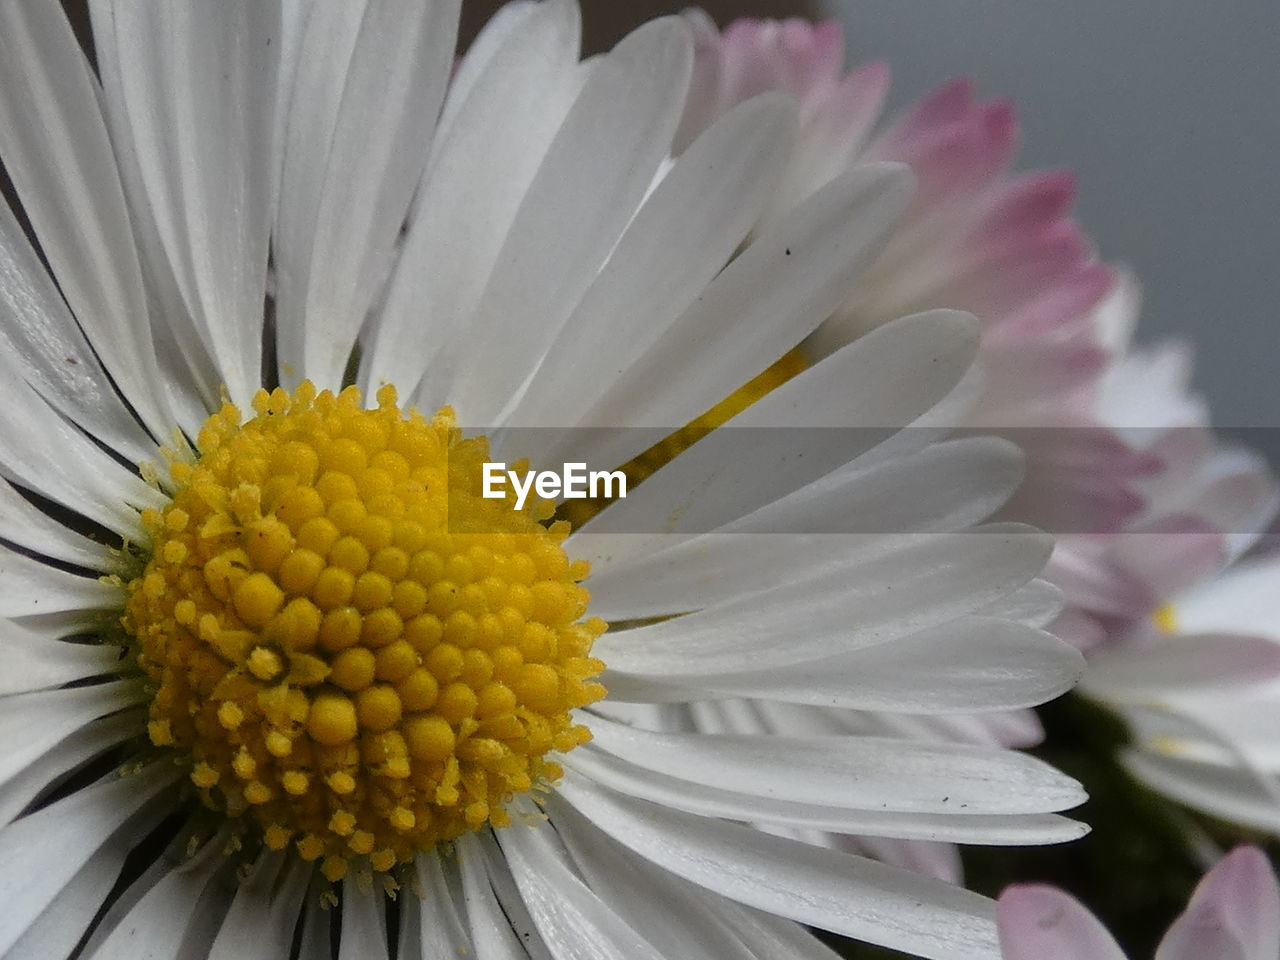 flower, flowering plant, beauty in nature, flower head, freshness, inflorescence, petal, plant, vulnerability, growth, close-up, fragility, pollen, yellow, no people, focus on foreground, white color, nature, daisy, gazania